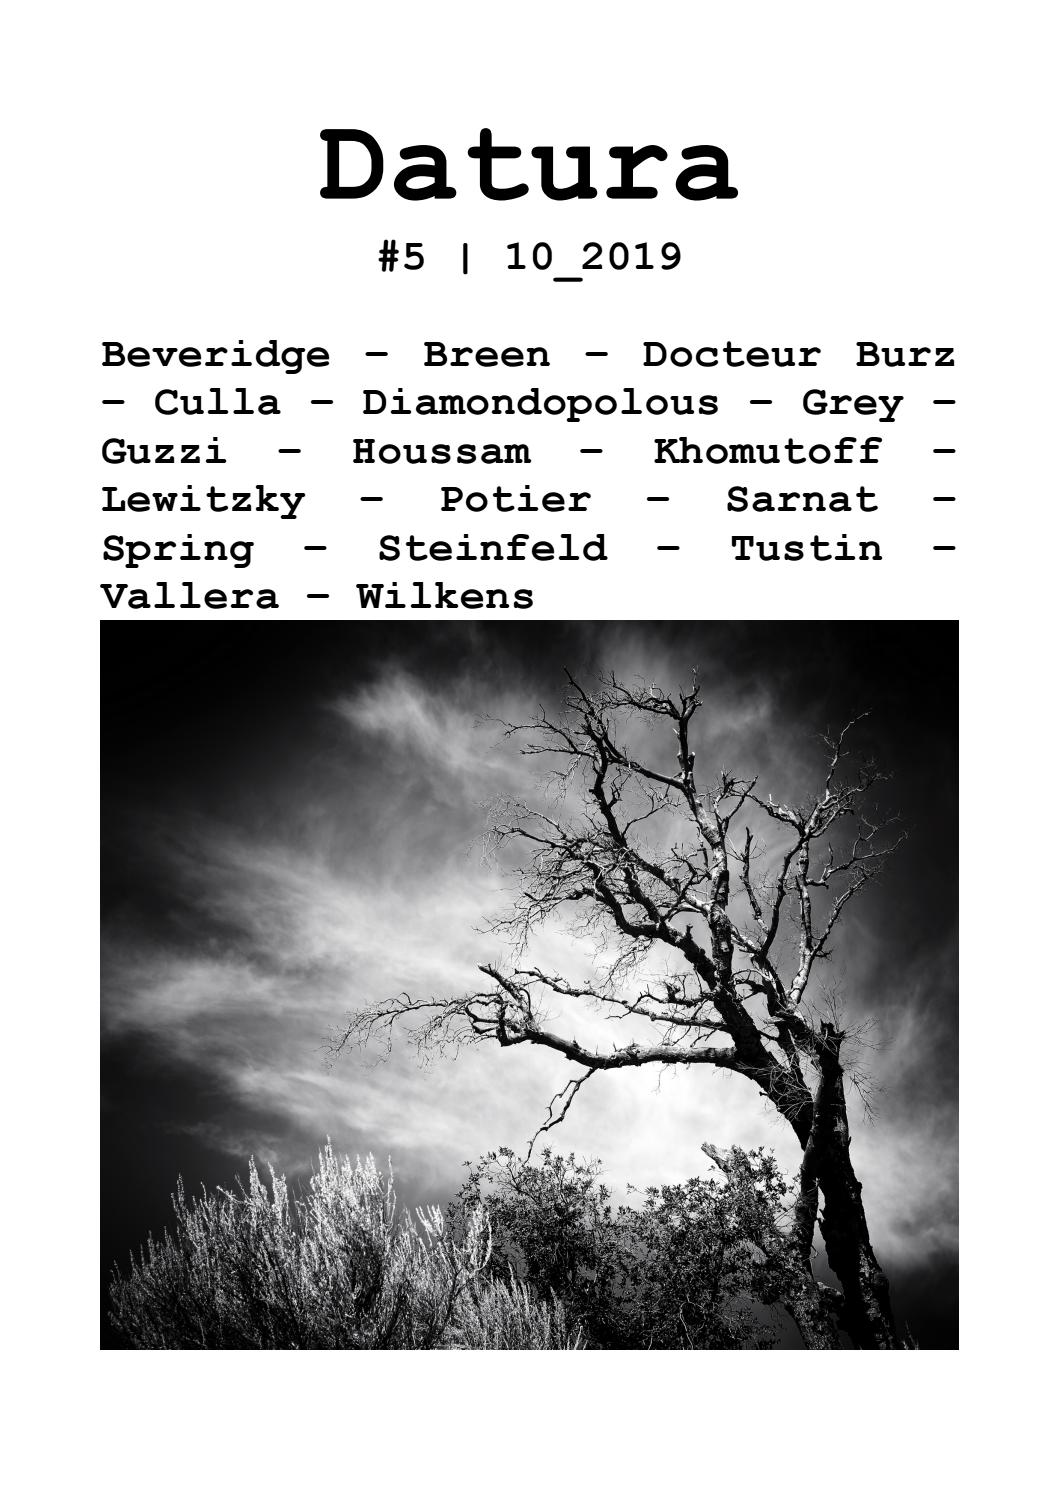 Datura Issue 5 October 2019 By Datura Issuu